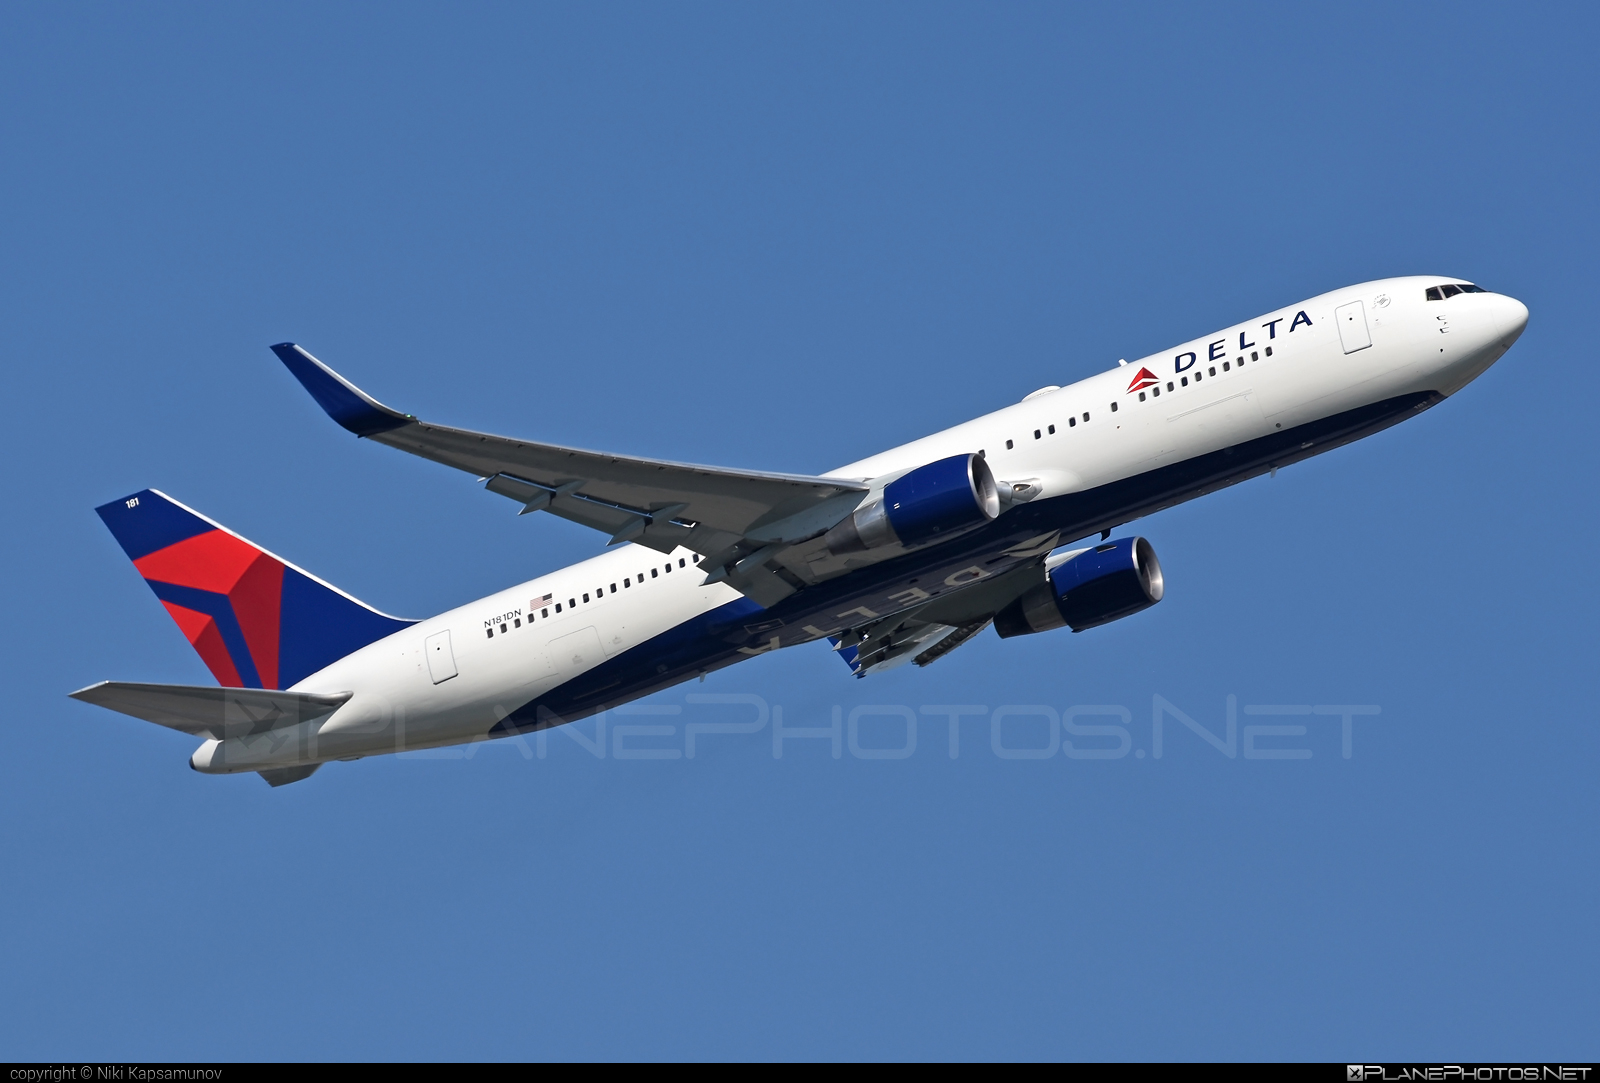 Boeing 767-300ER - N181DN operated by Delta Air Lines #b767 #b767er #boeing #boeing767 #deltaairlines